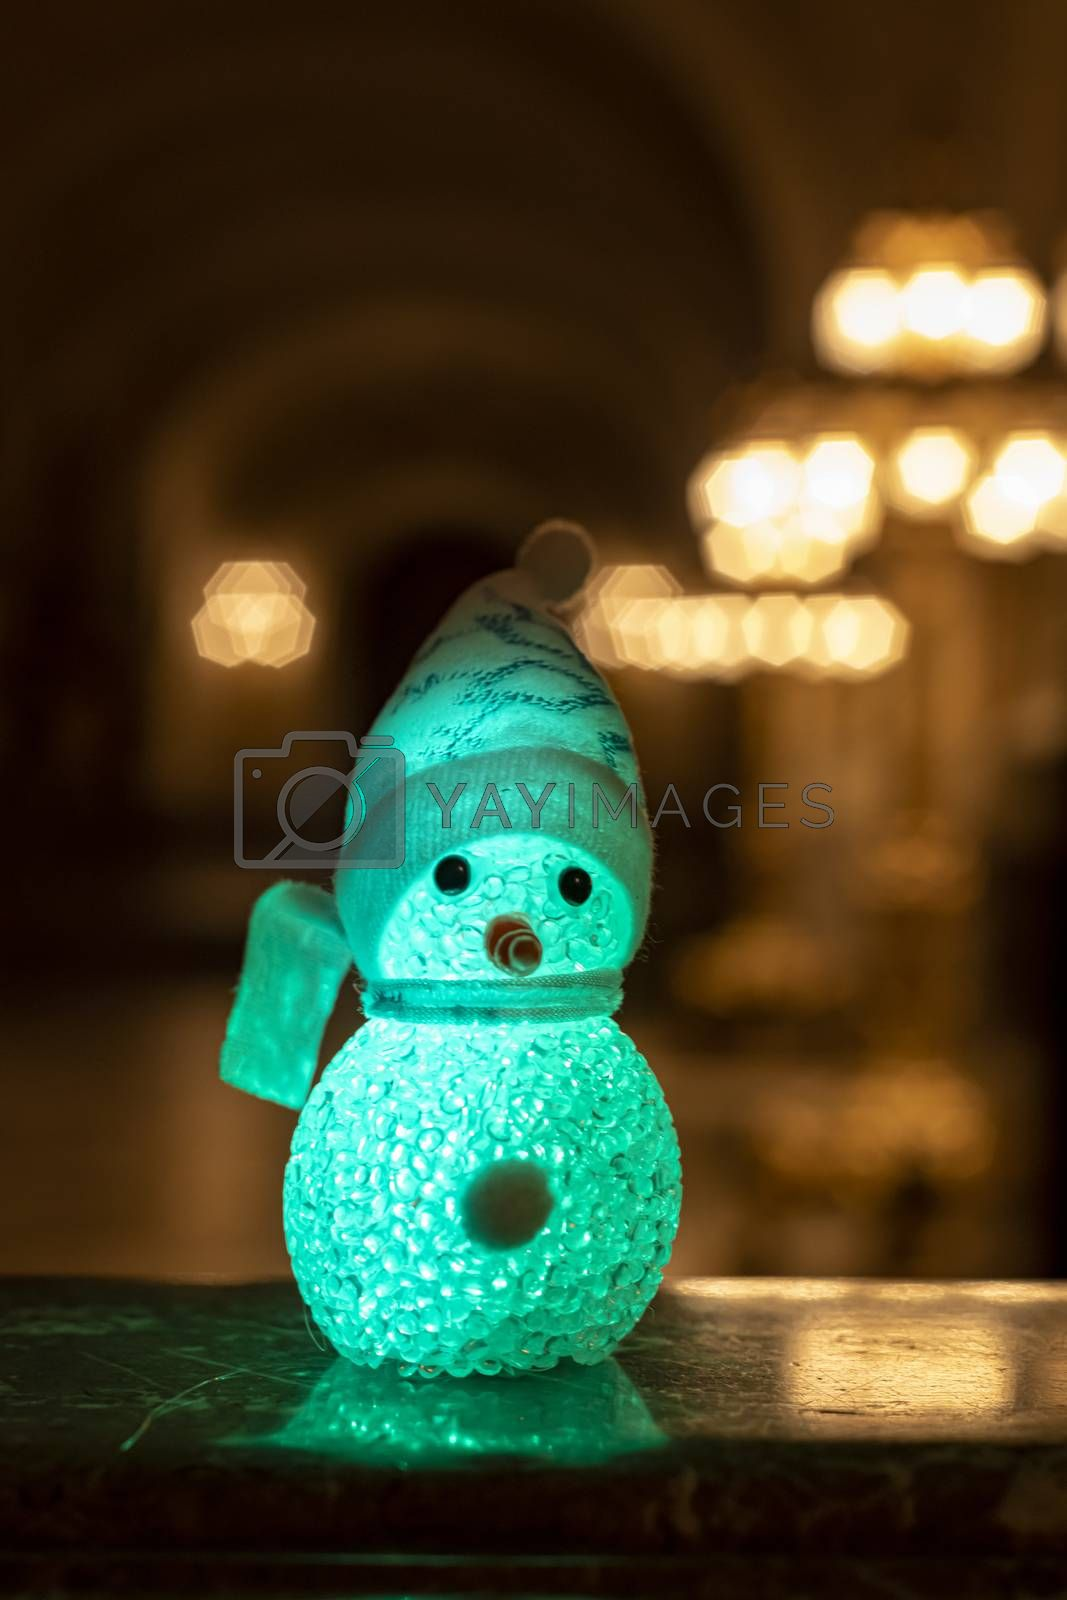 Little snowman wearing a rainbow scarf and hat against a golden light bokeh waiting for Christmas time and gifts